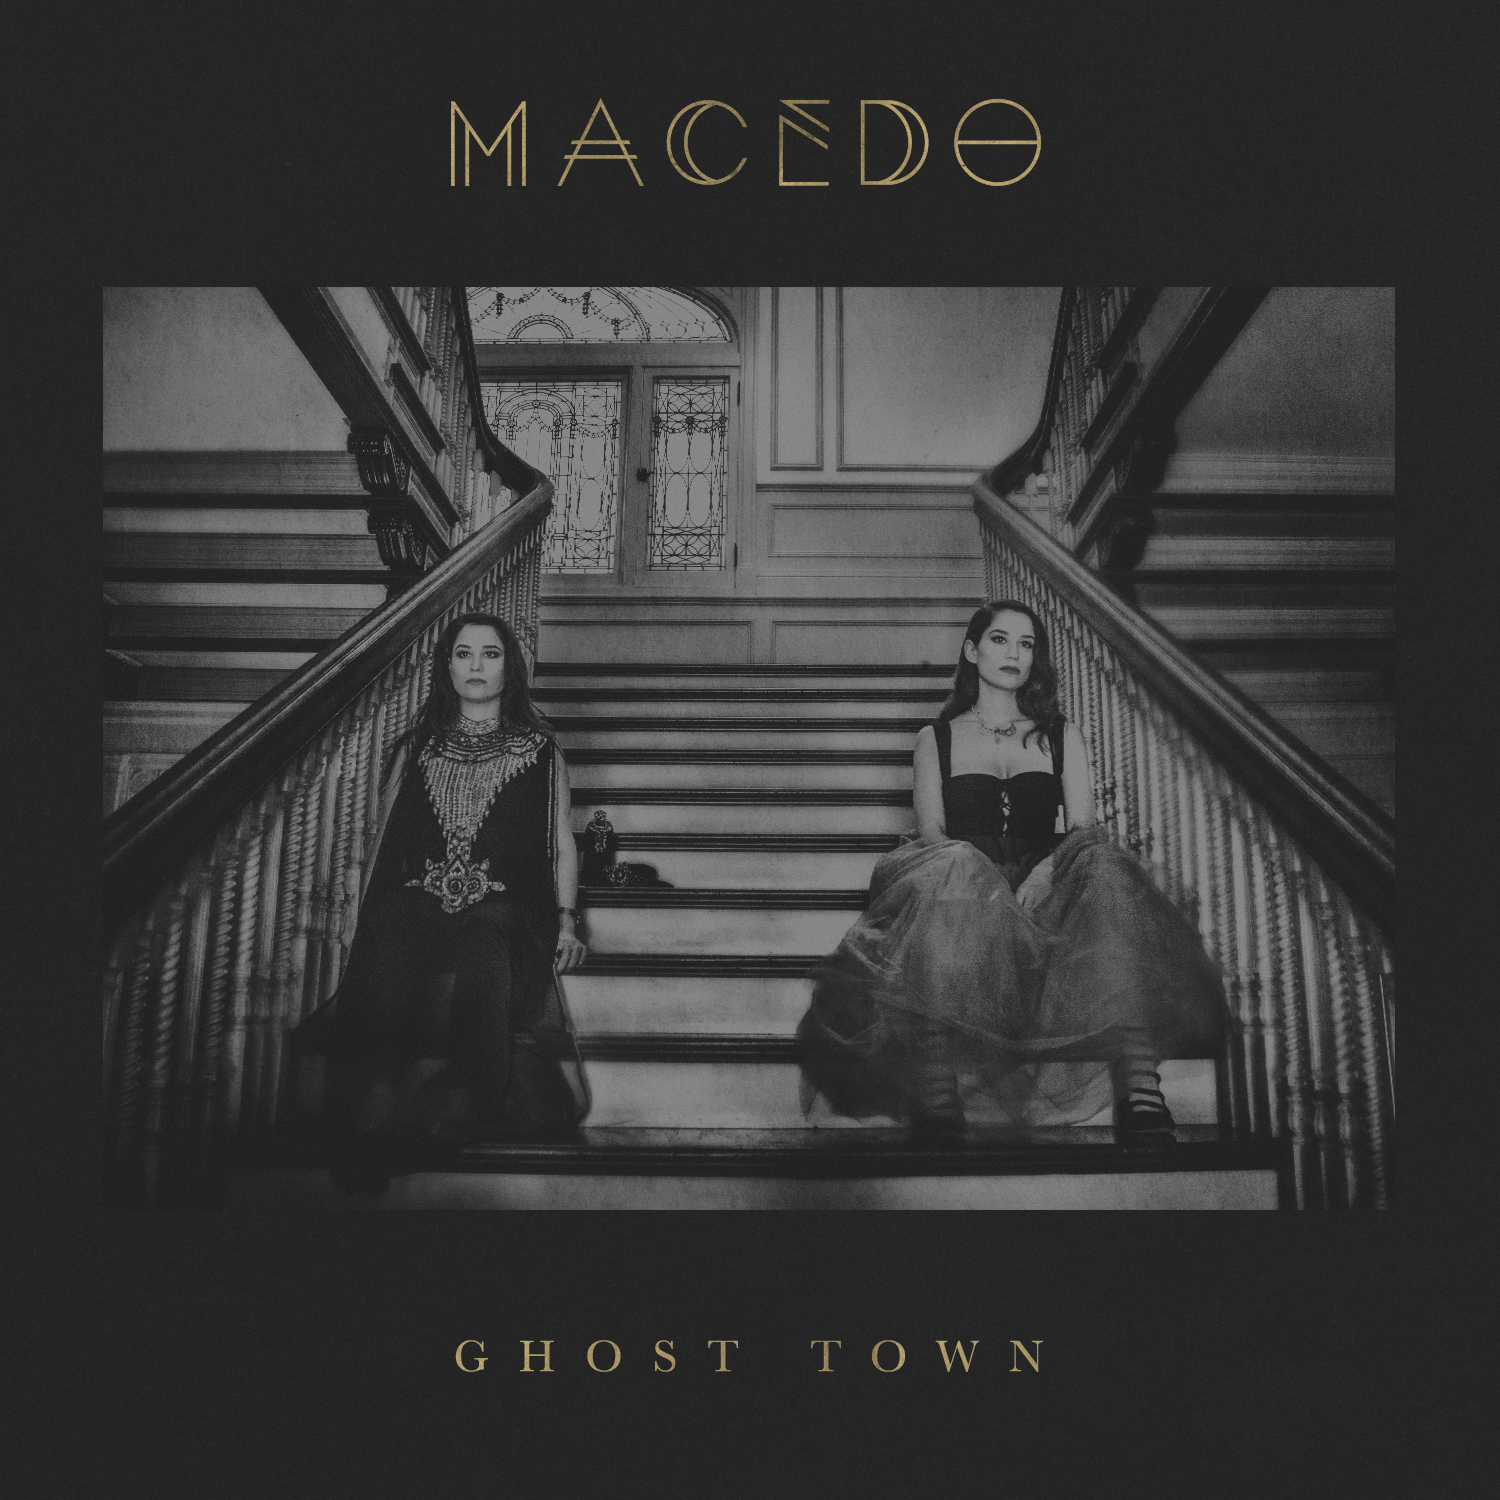 macedo_ghosttown_album_final.jpg